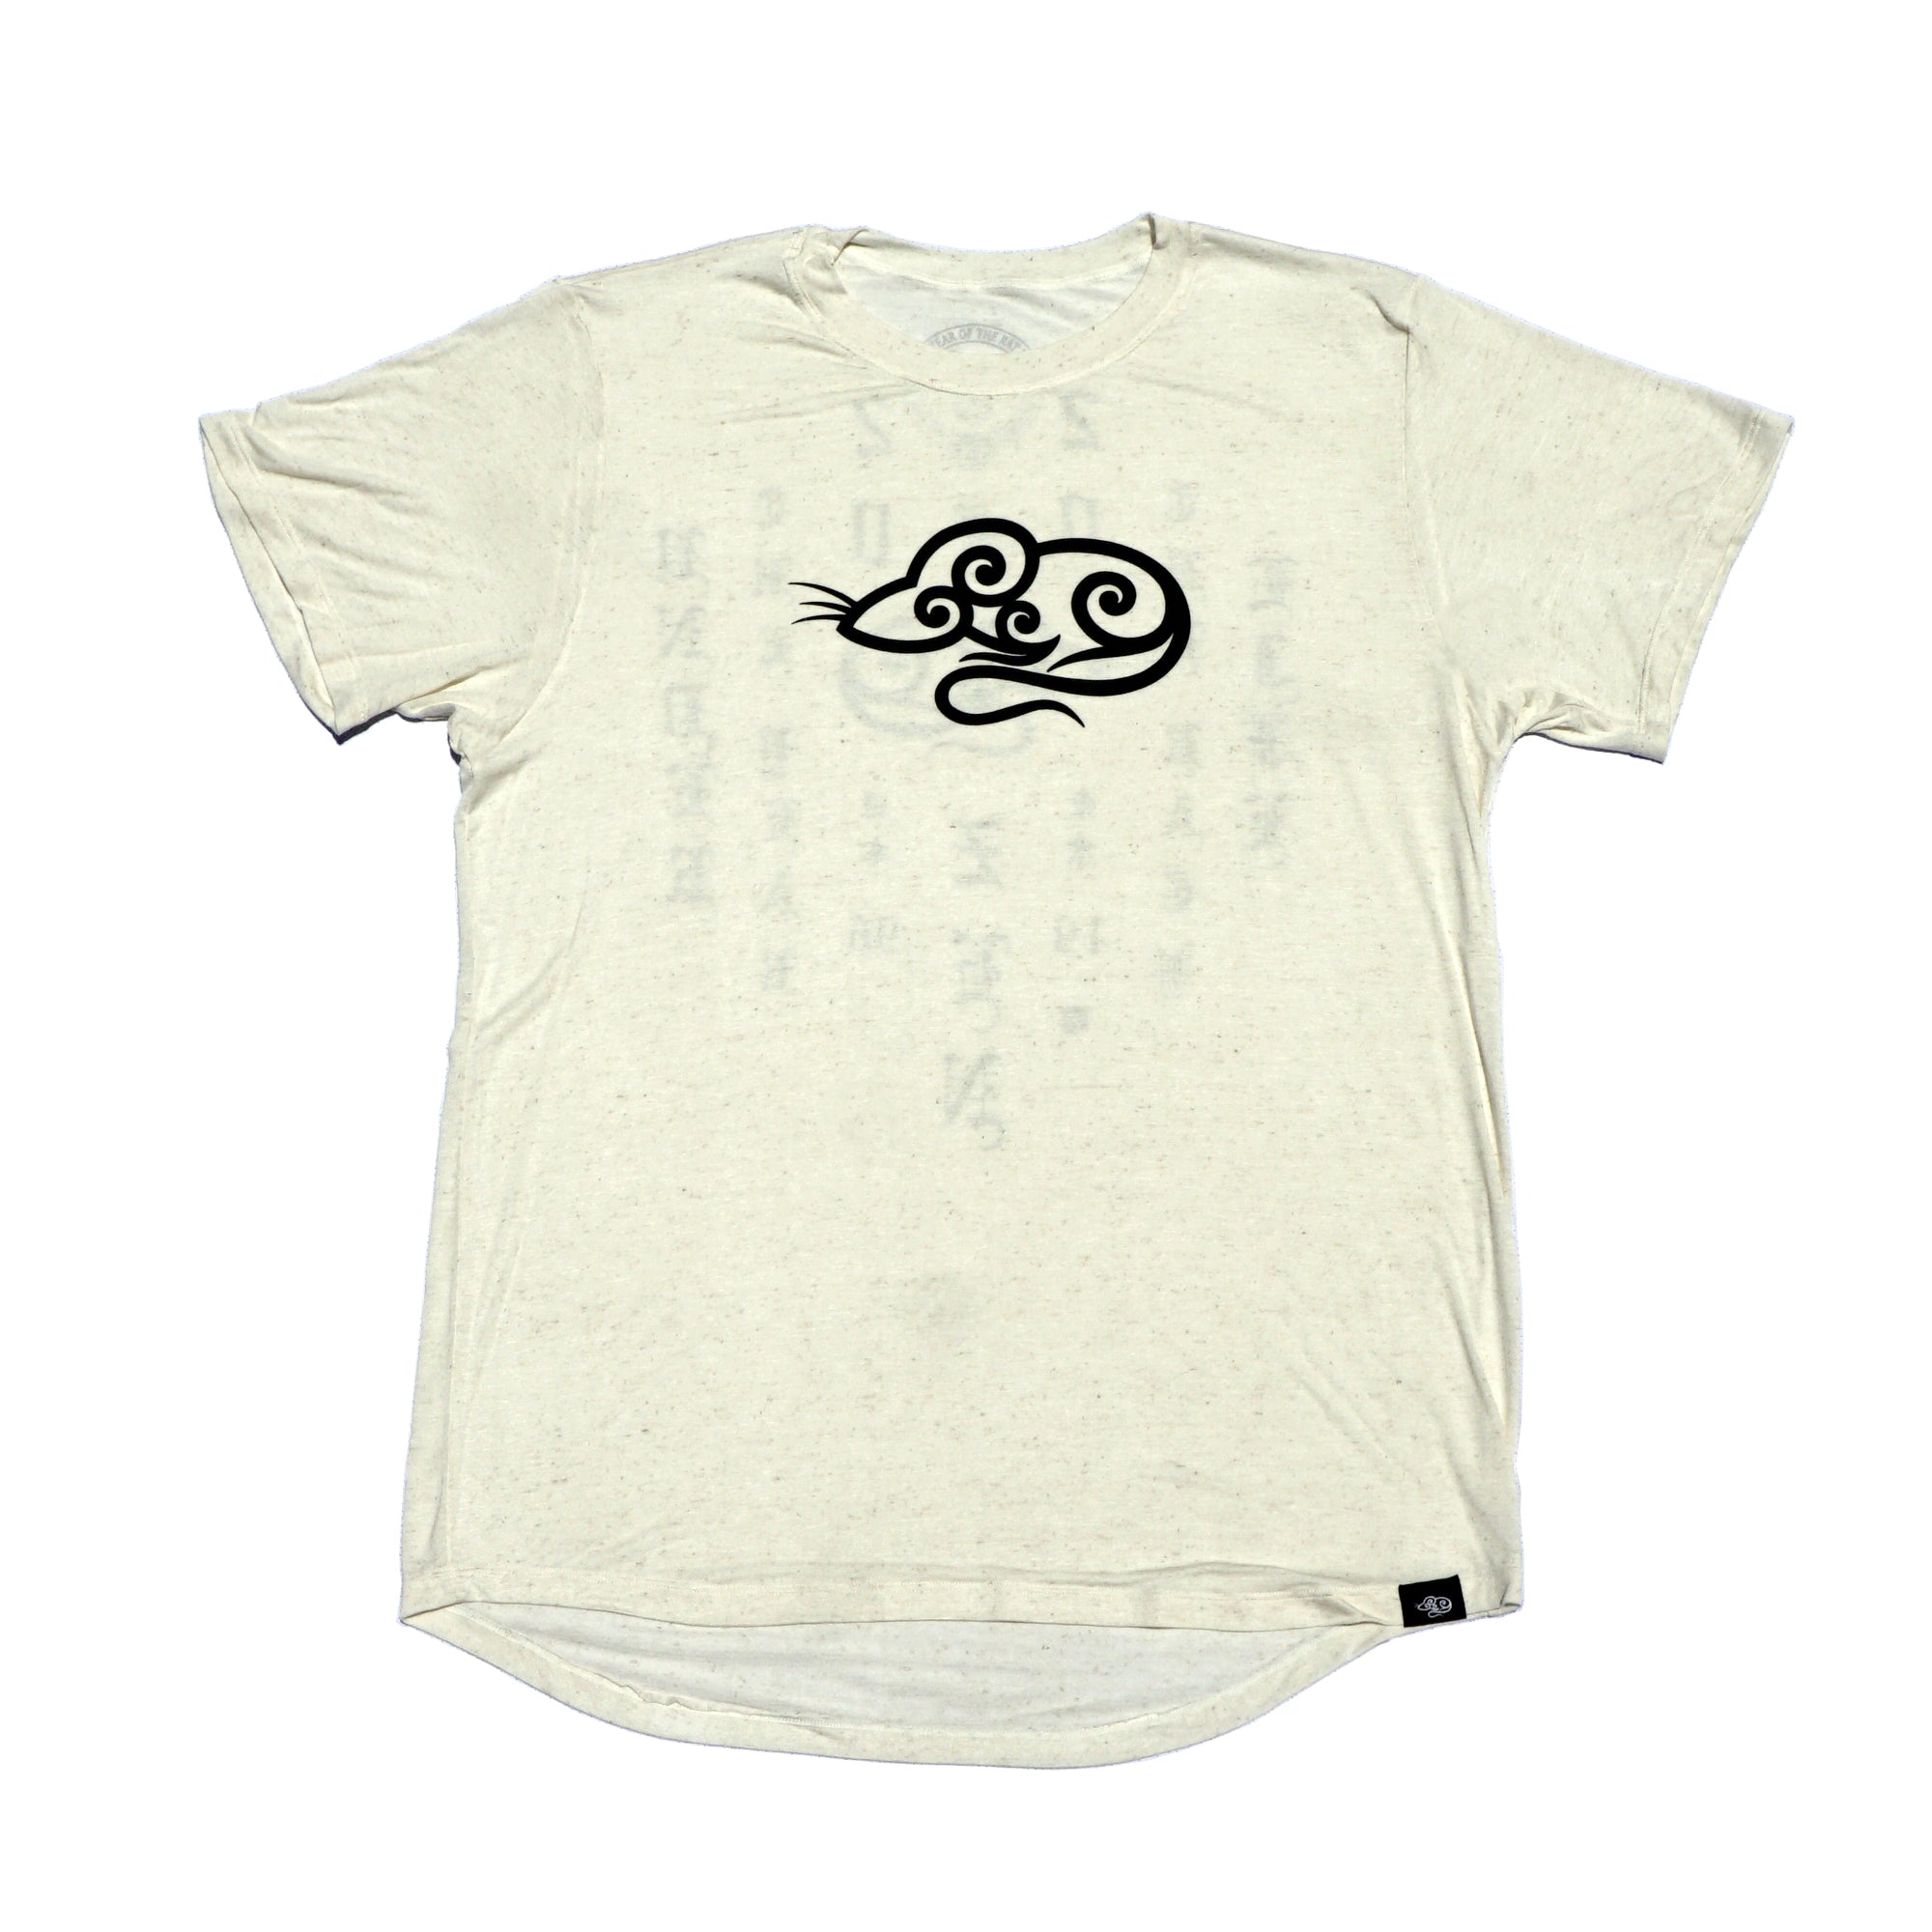 ORIGINAL RAT T-SHIRT